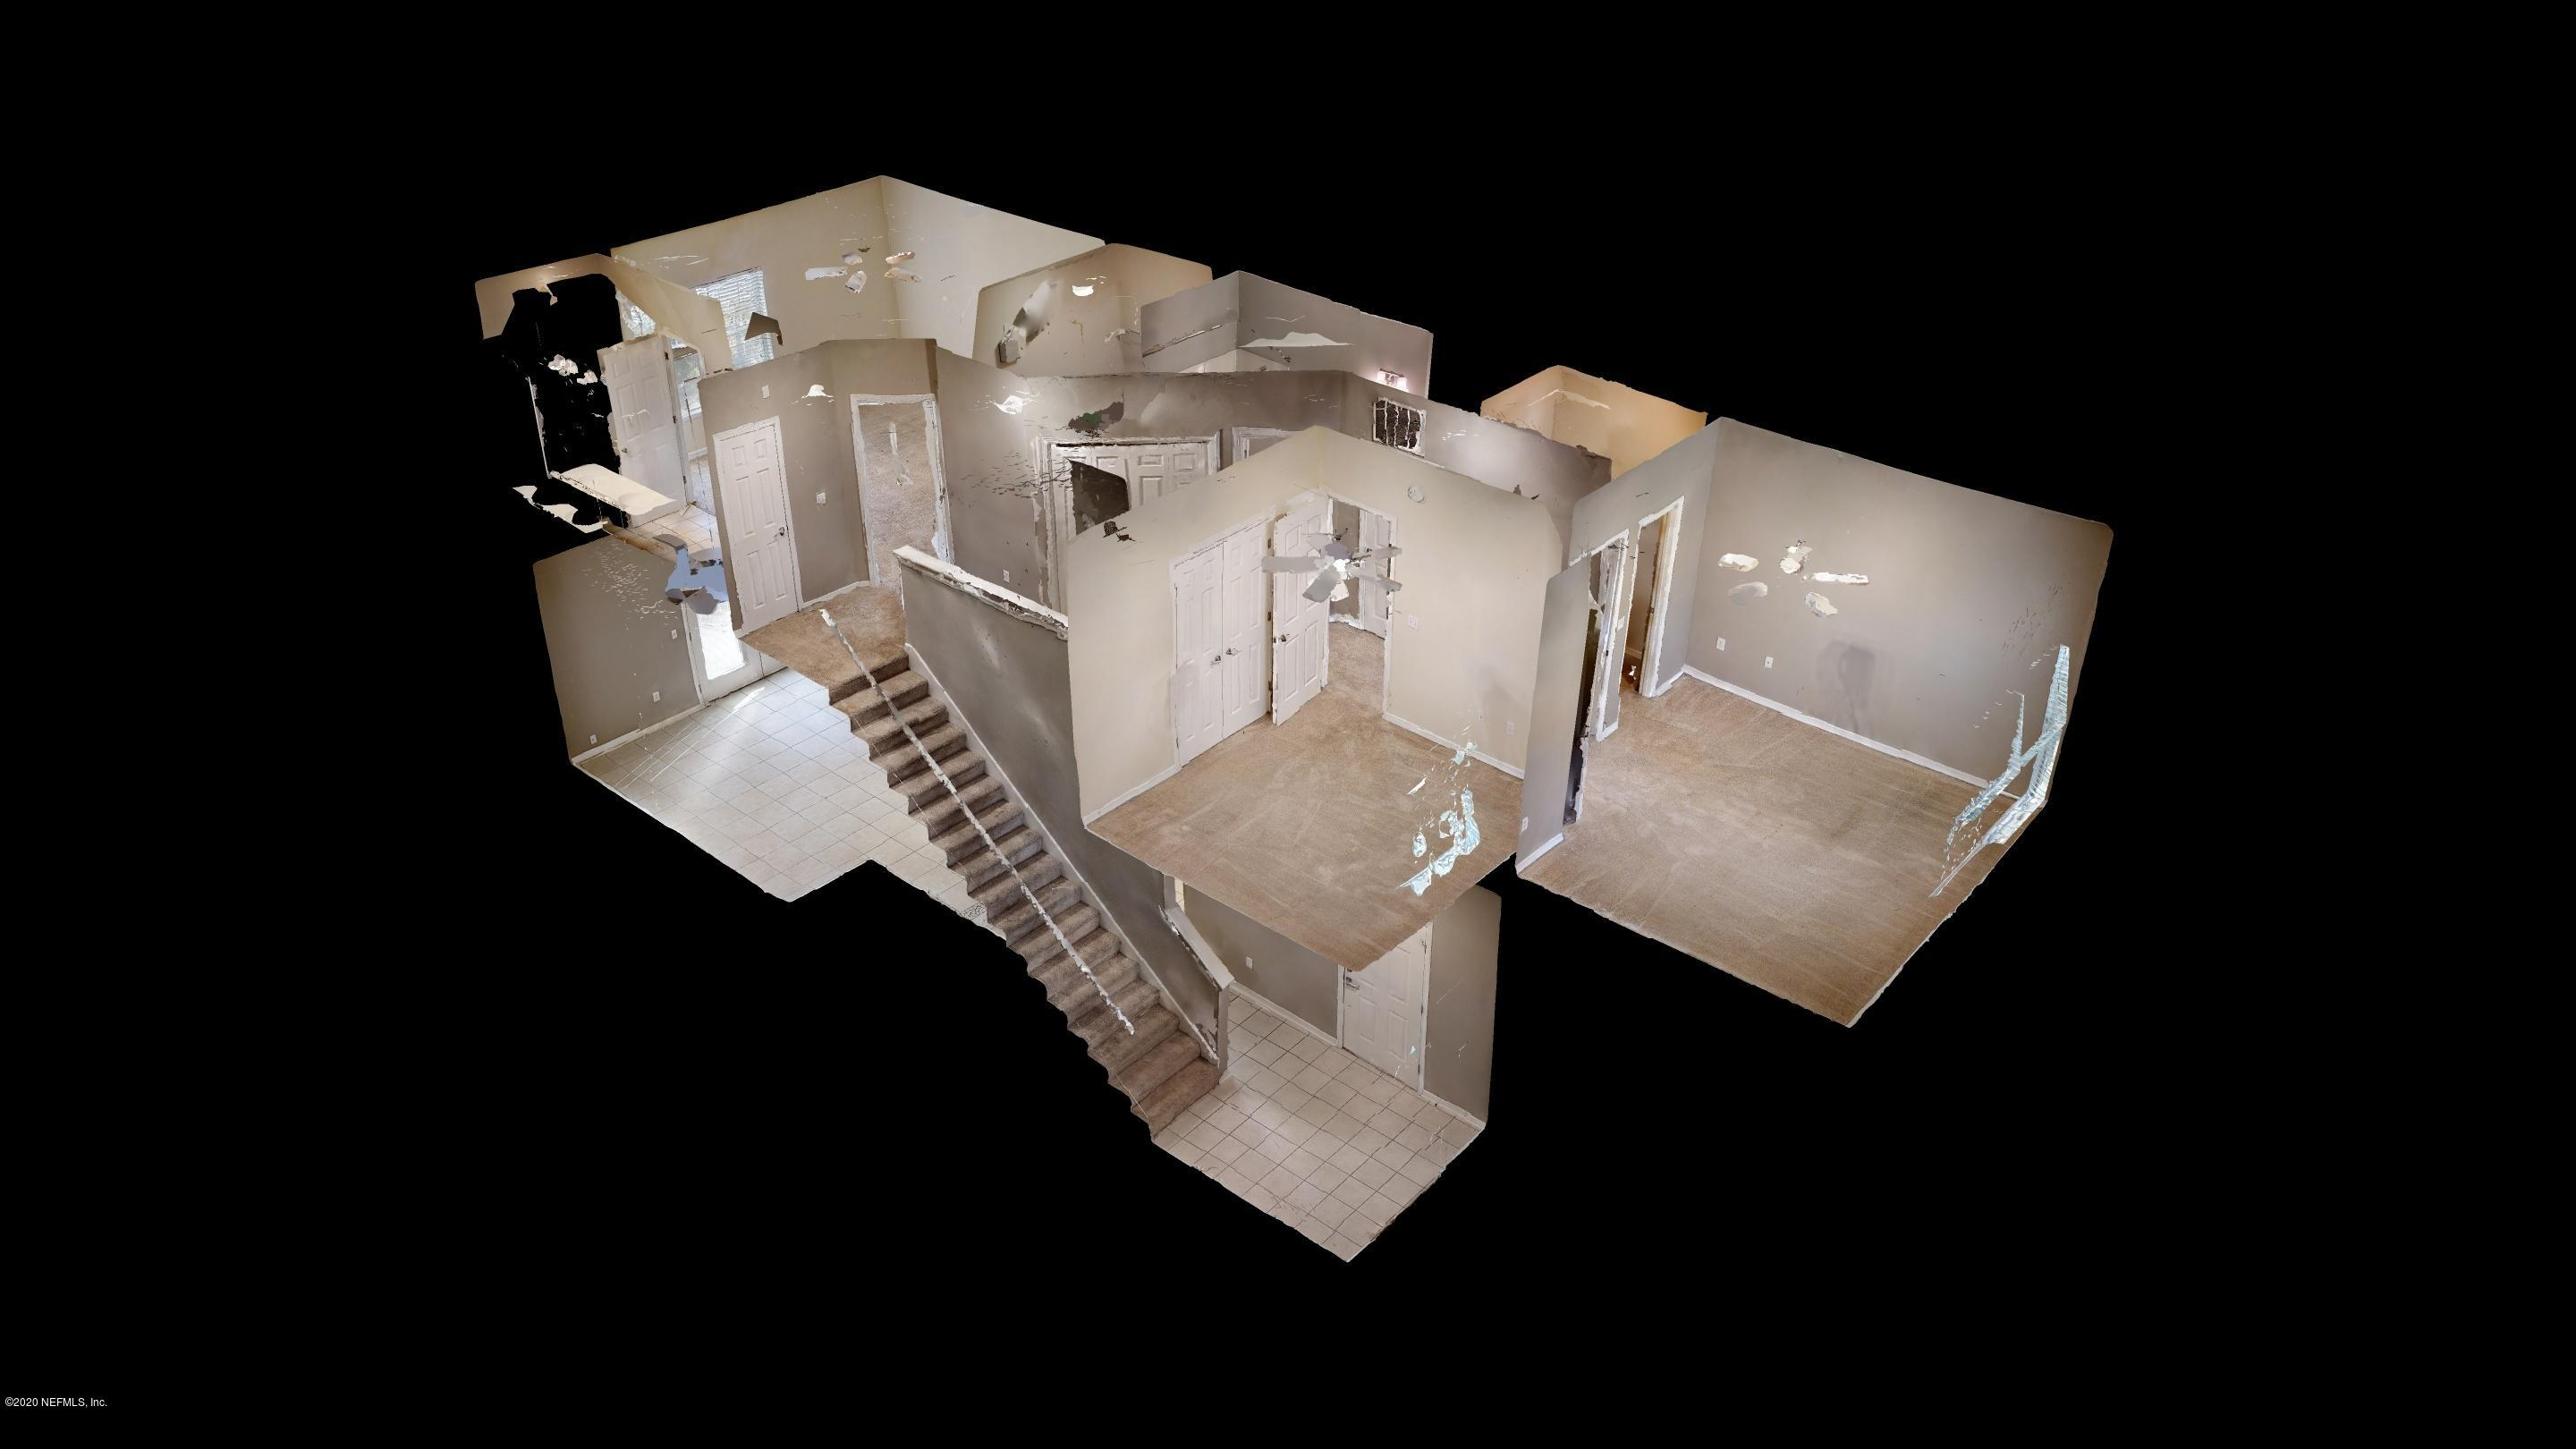 2190 MONUMENT, JACKSONVILLE, FLORIDA 32225, 3 Bedrooms Bedrooms, ,2 BathroomsBathrooms,Residential,For sale,MONUMENT,1081087